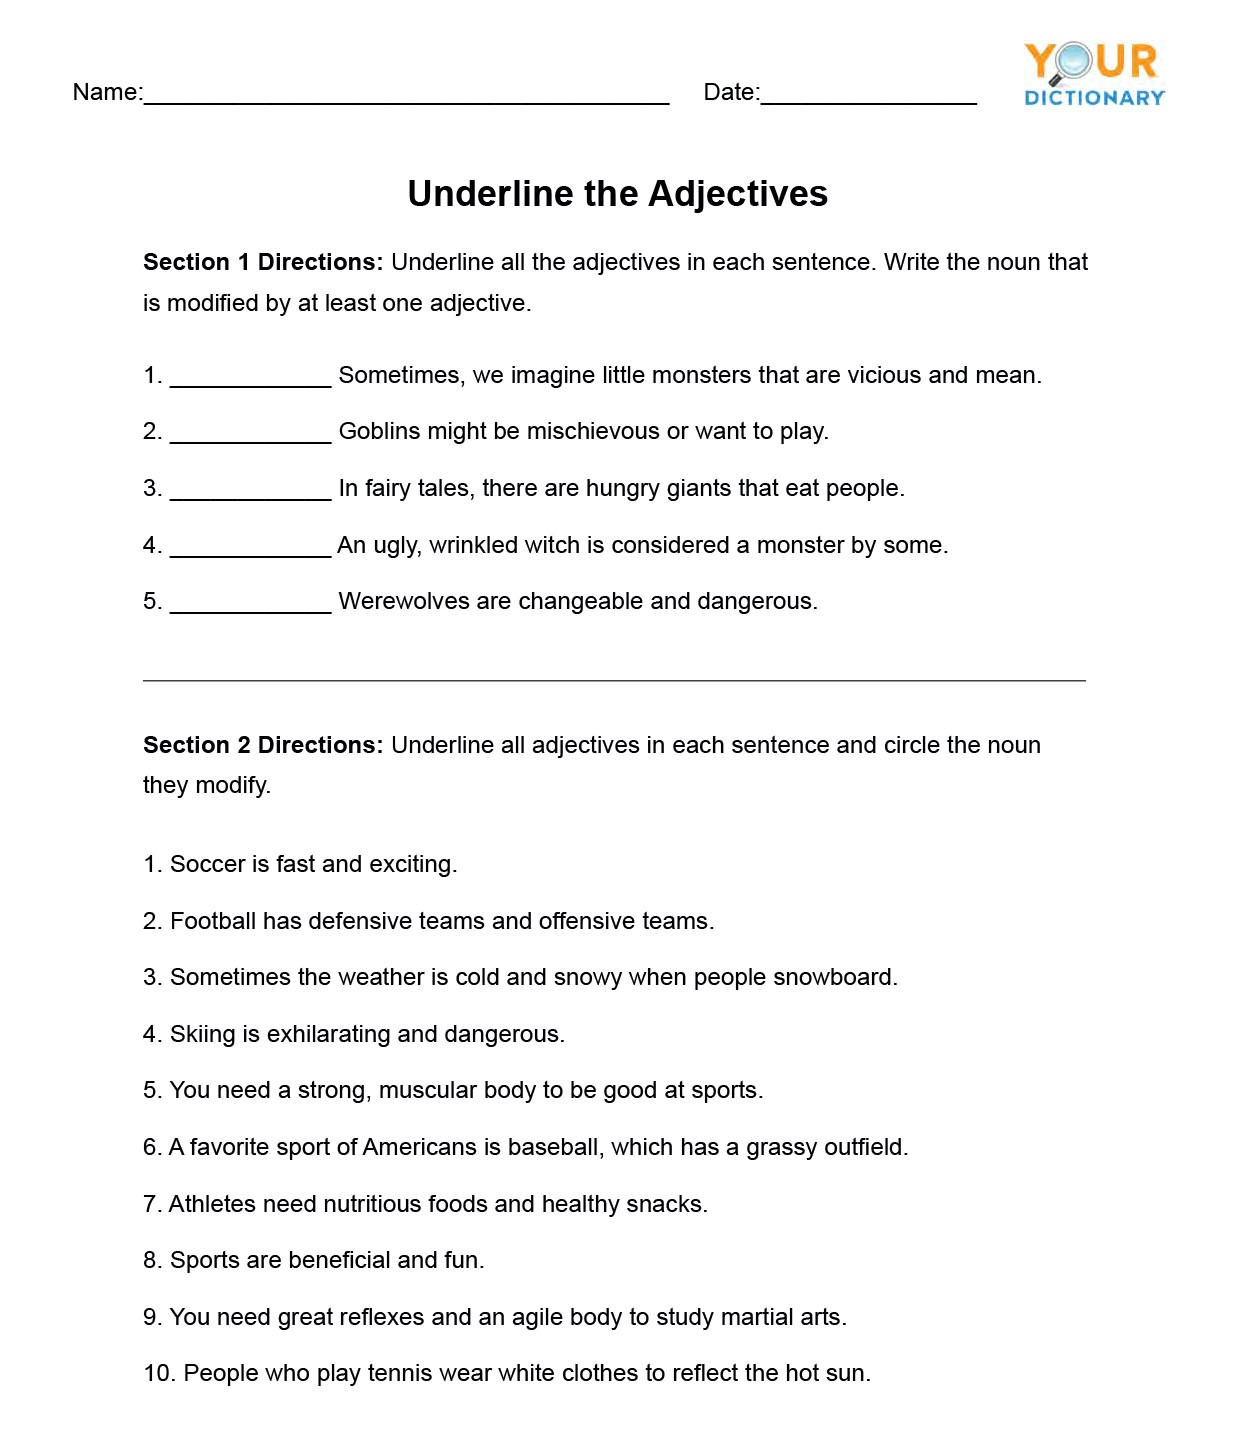 Middle School Health Worksheets Pdf Adjective Worksheets for Elementary and Middle School